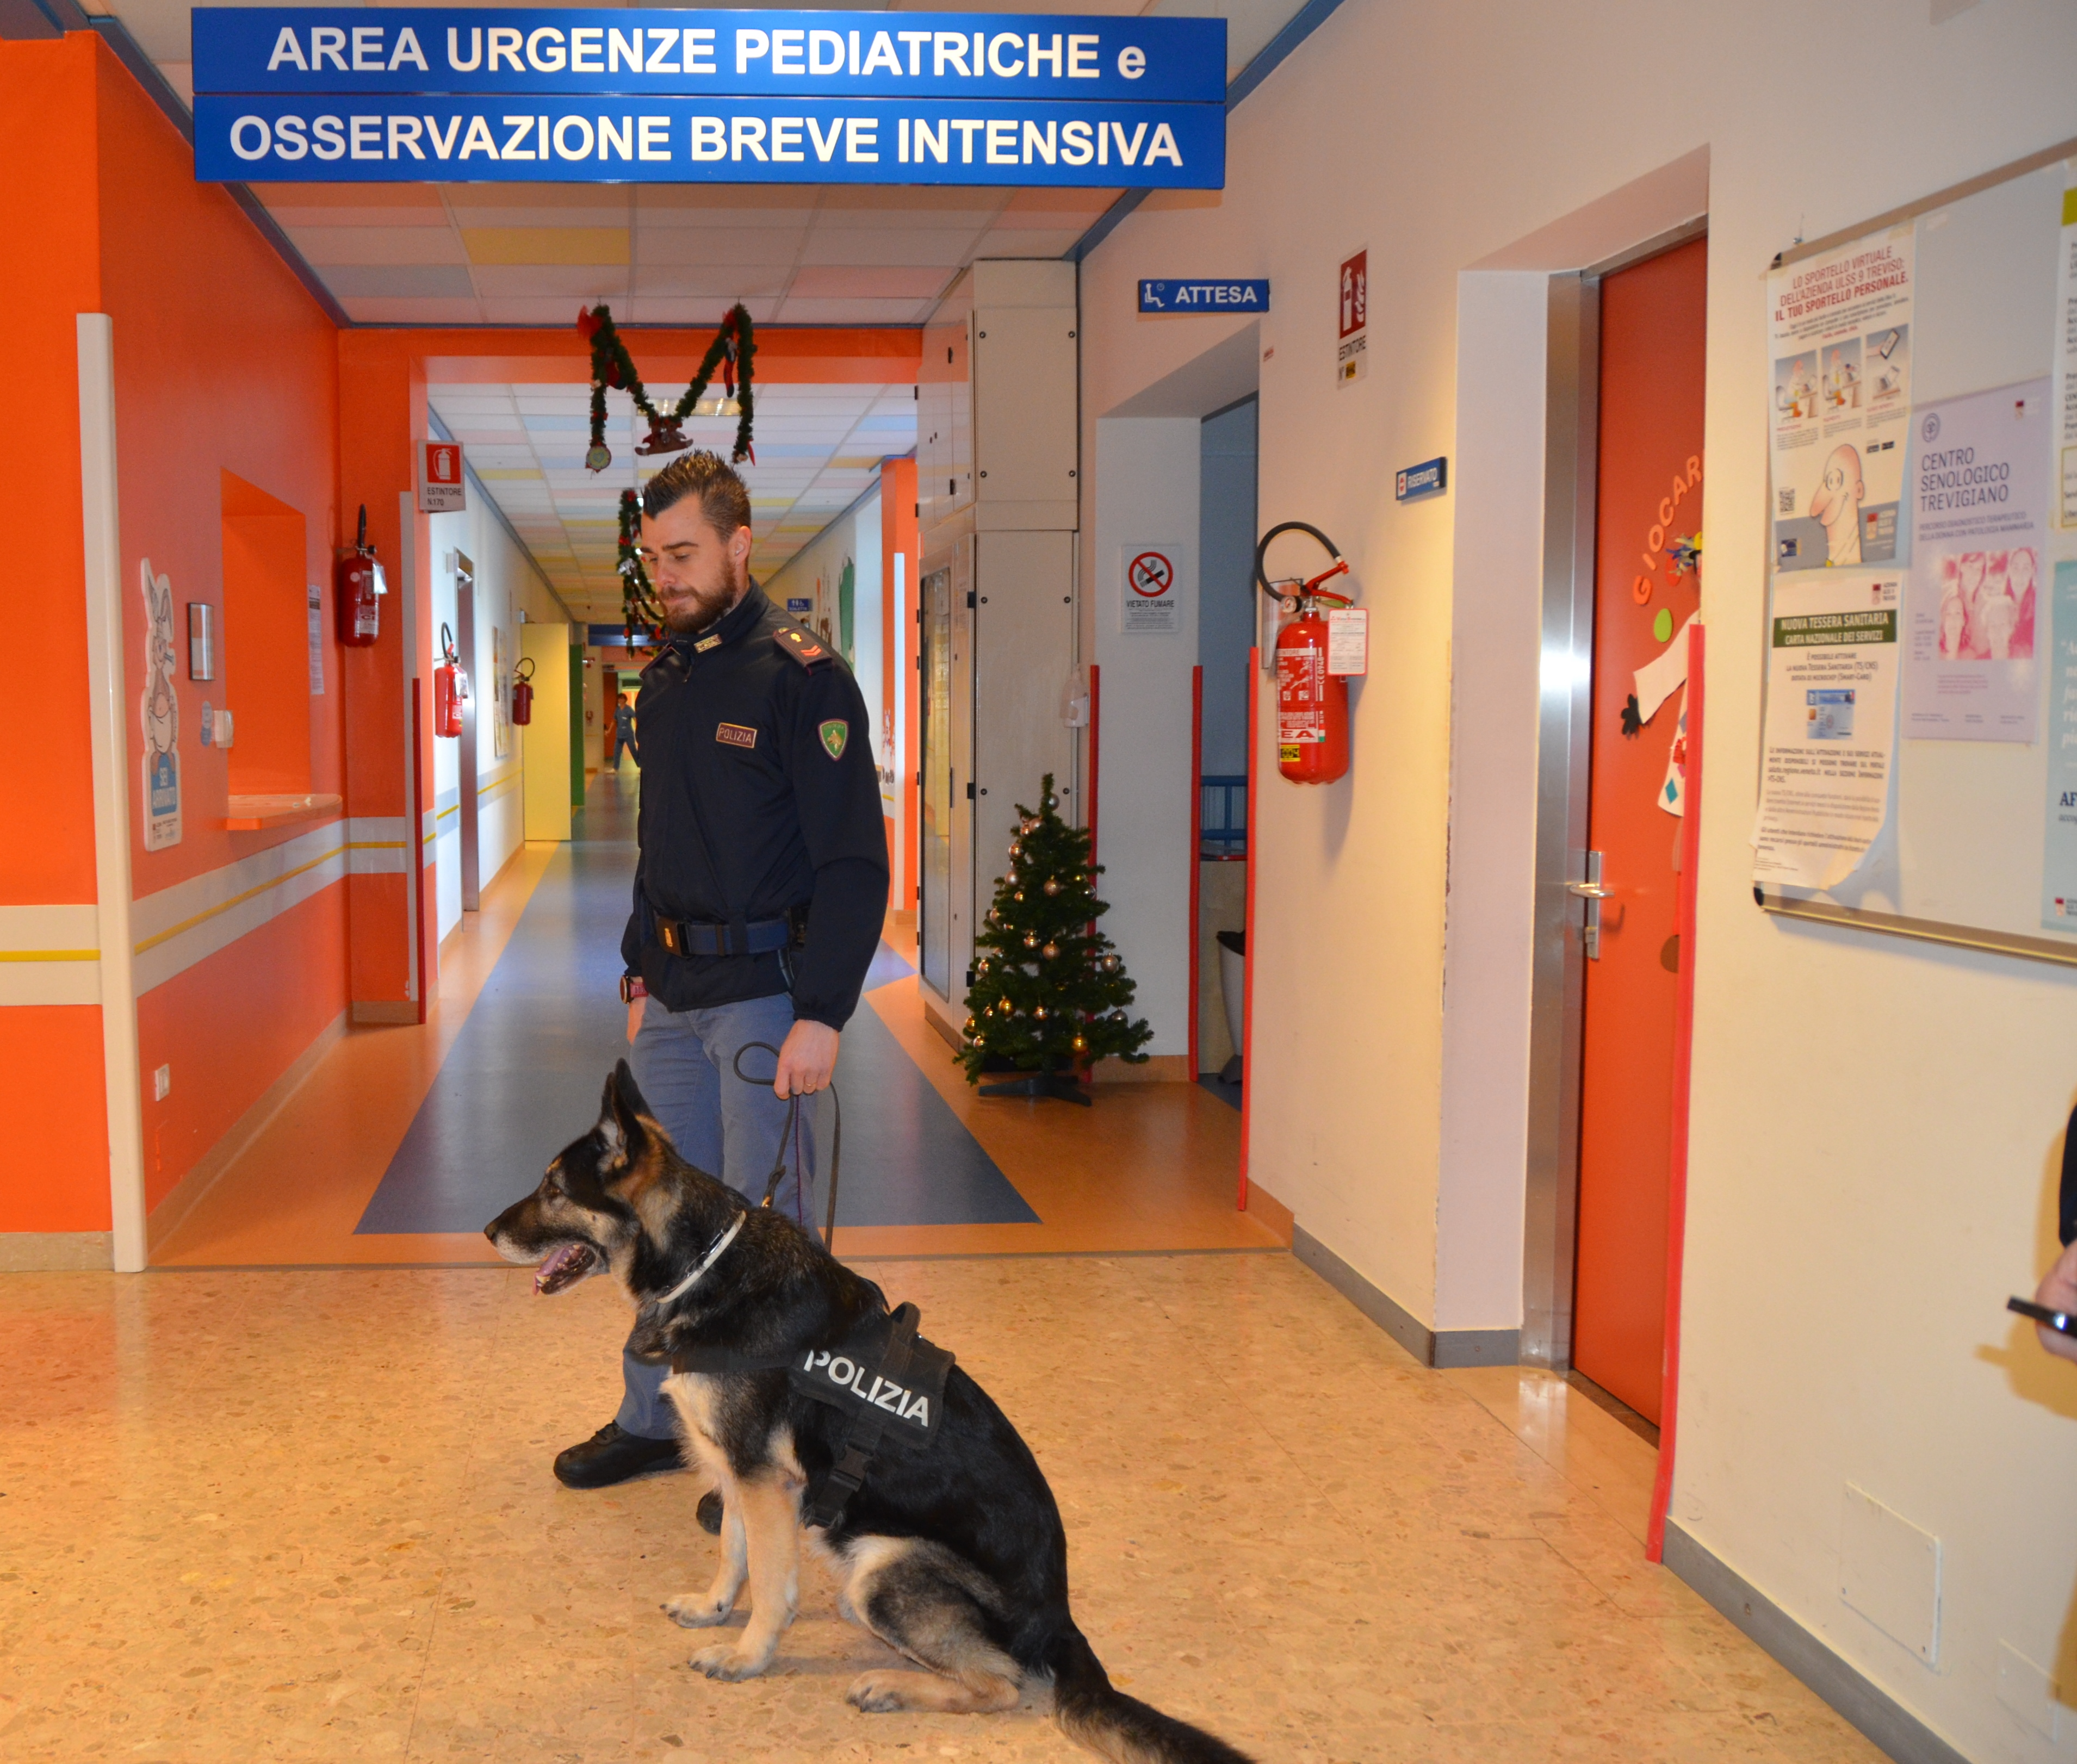 Polizia in pediatria